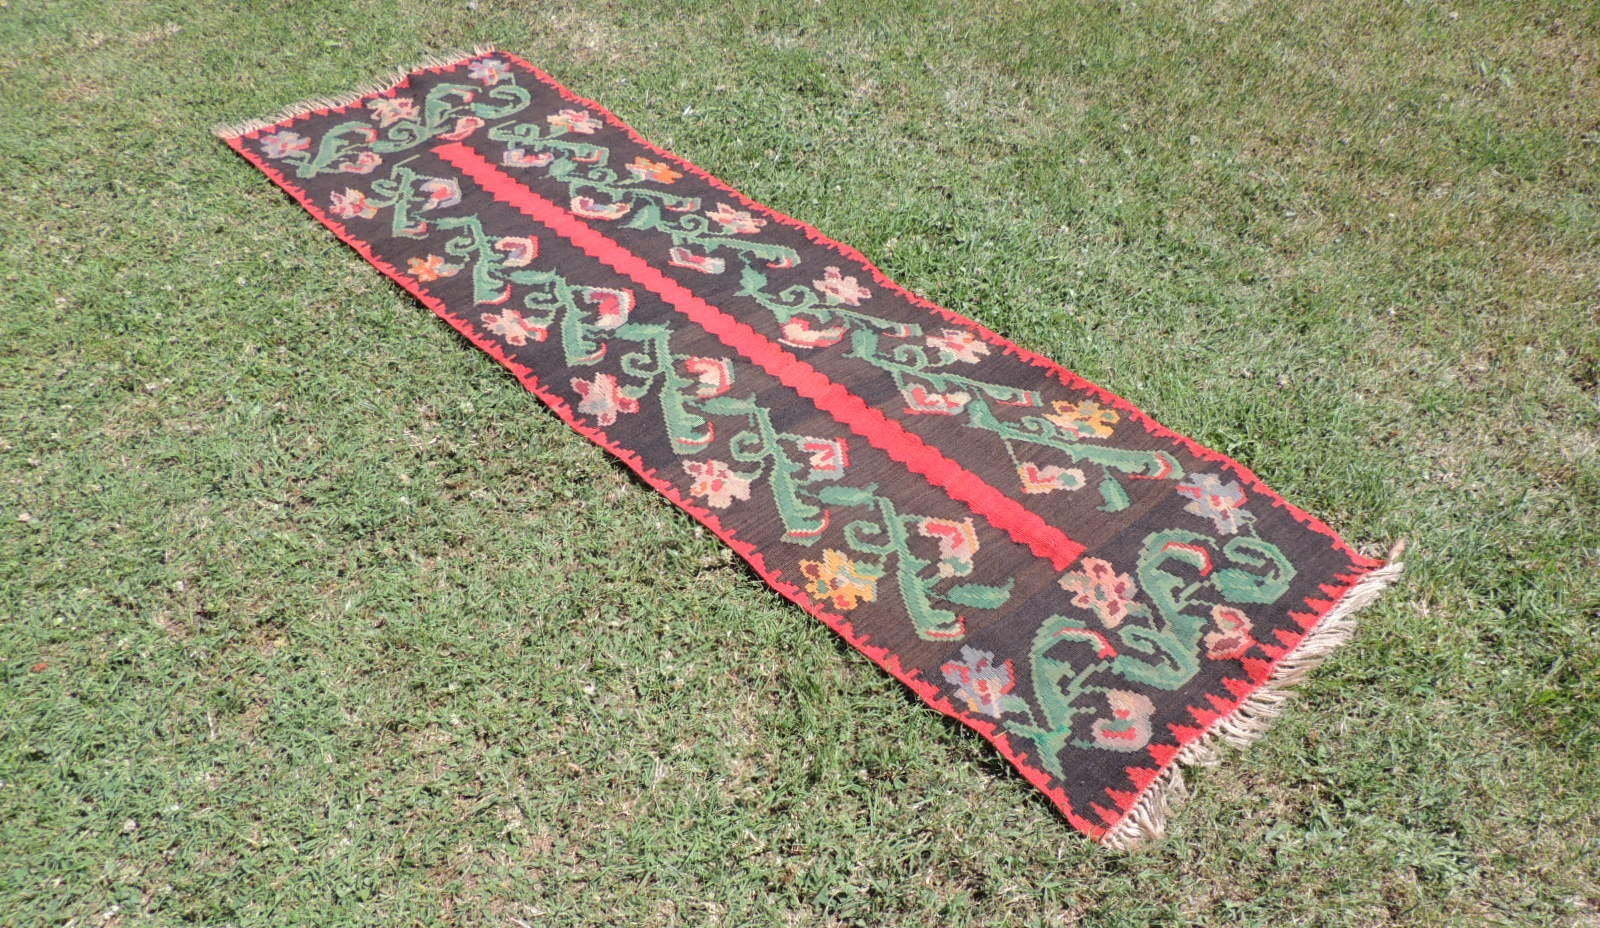 Karabagh kilim runner rug - bosphorusrugs  - 1